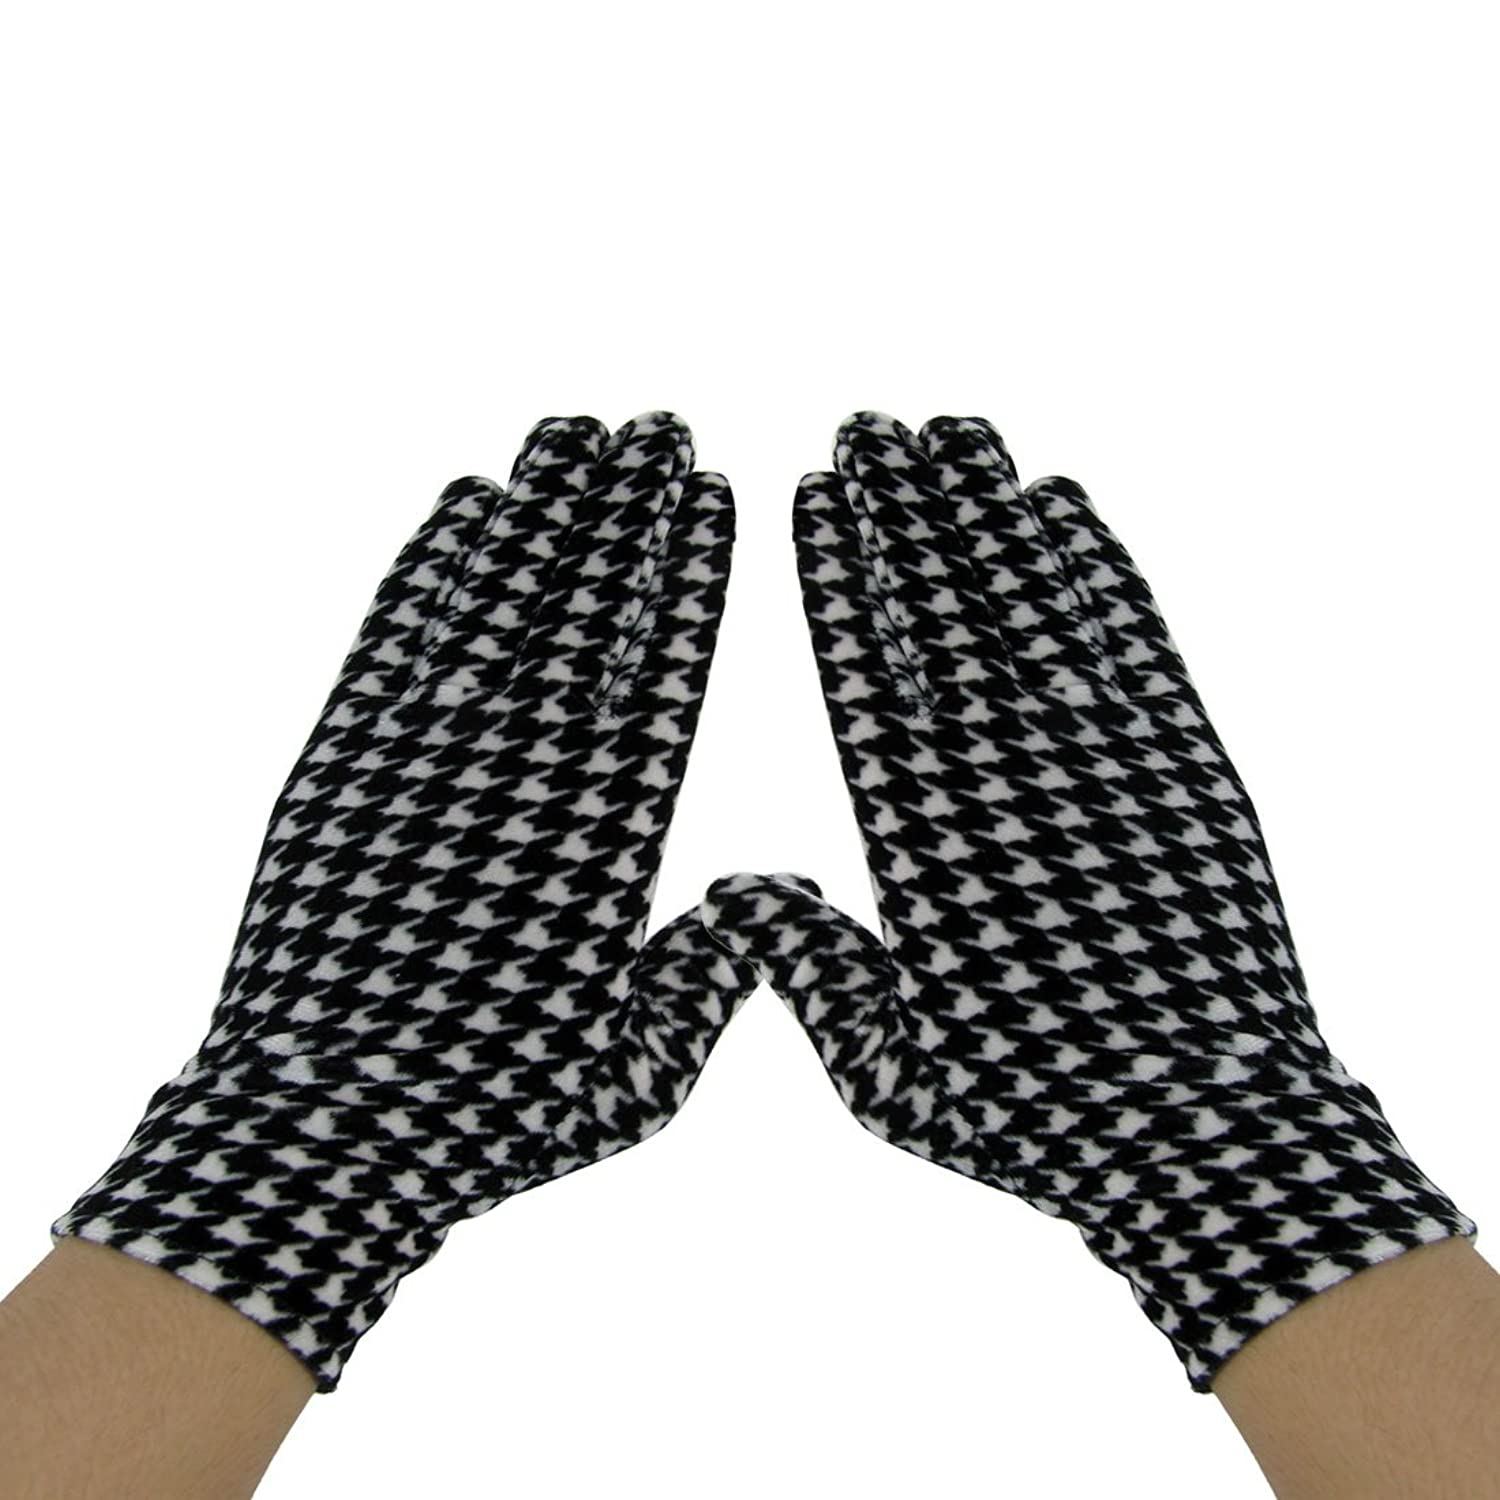 Ladies Pair Houndstooth Printed Full Fingers Warm Gloves Black White pro biker mcs 22 full fingers motorcycle racing gloves blue black pair size xl